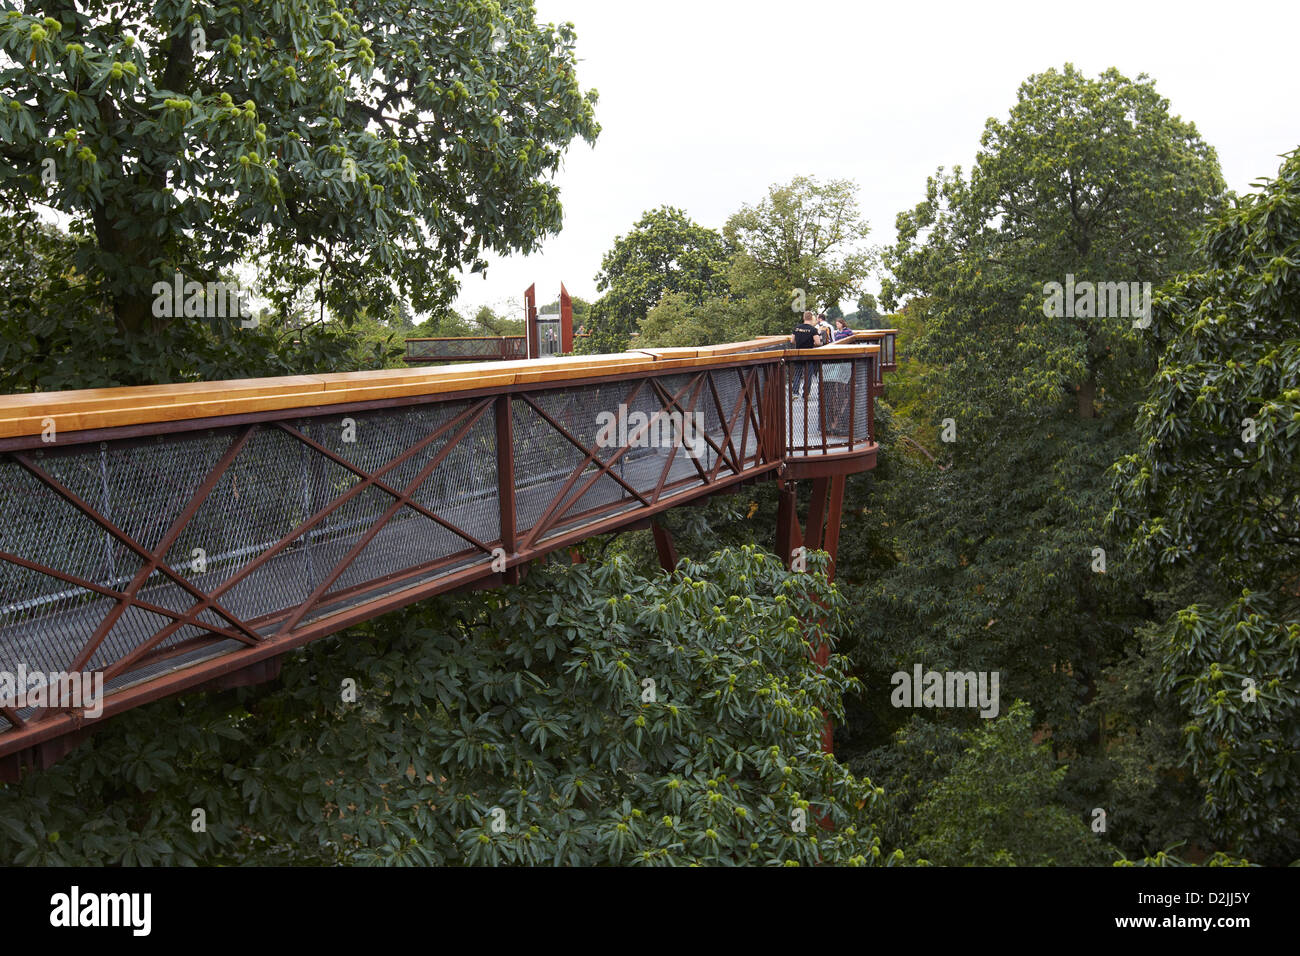 Le rhizotron et Xstrata treetop walkway, Kew Gardens, London, UK Photo Stock